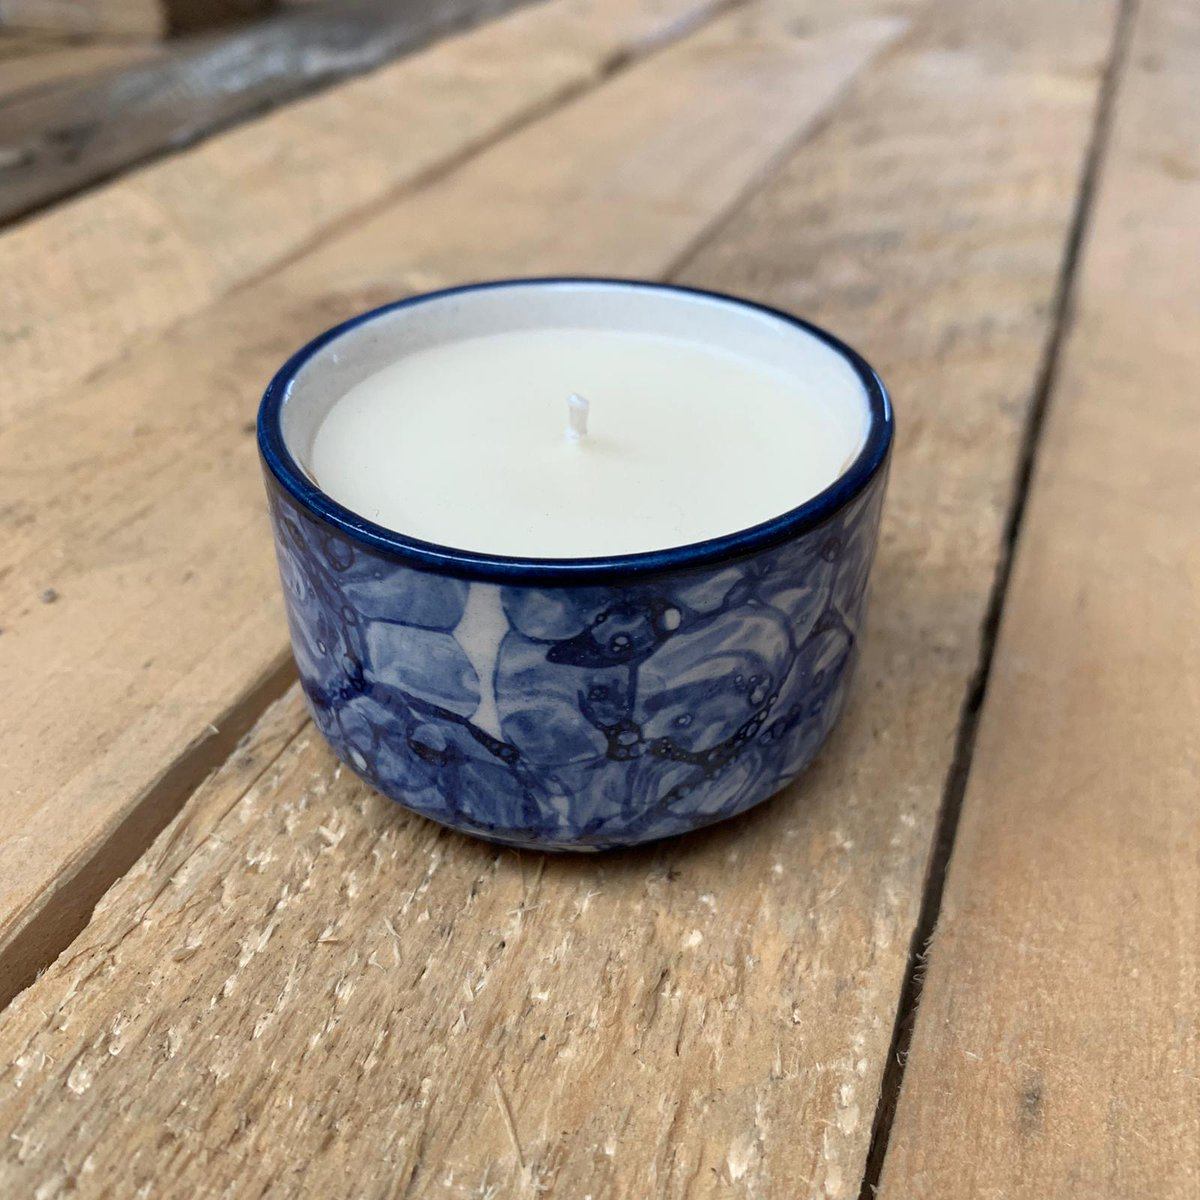 Last up, I love this blue! Would you buy it for your home or for a gift? #newdesigns #newrange #candles #handmade #glazedclay #dharavislum #indiamade #orginalscent #dalitgoods #dalitcandles #artisanmade #giftwithastory #brandswithpassionpic.twitter.com/FN2FR57pIA